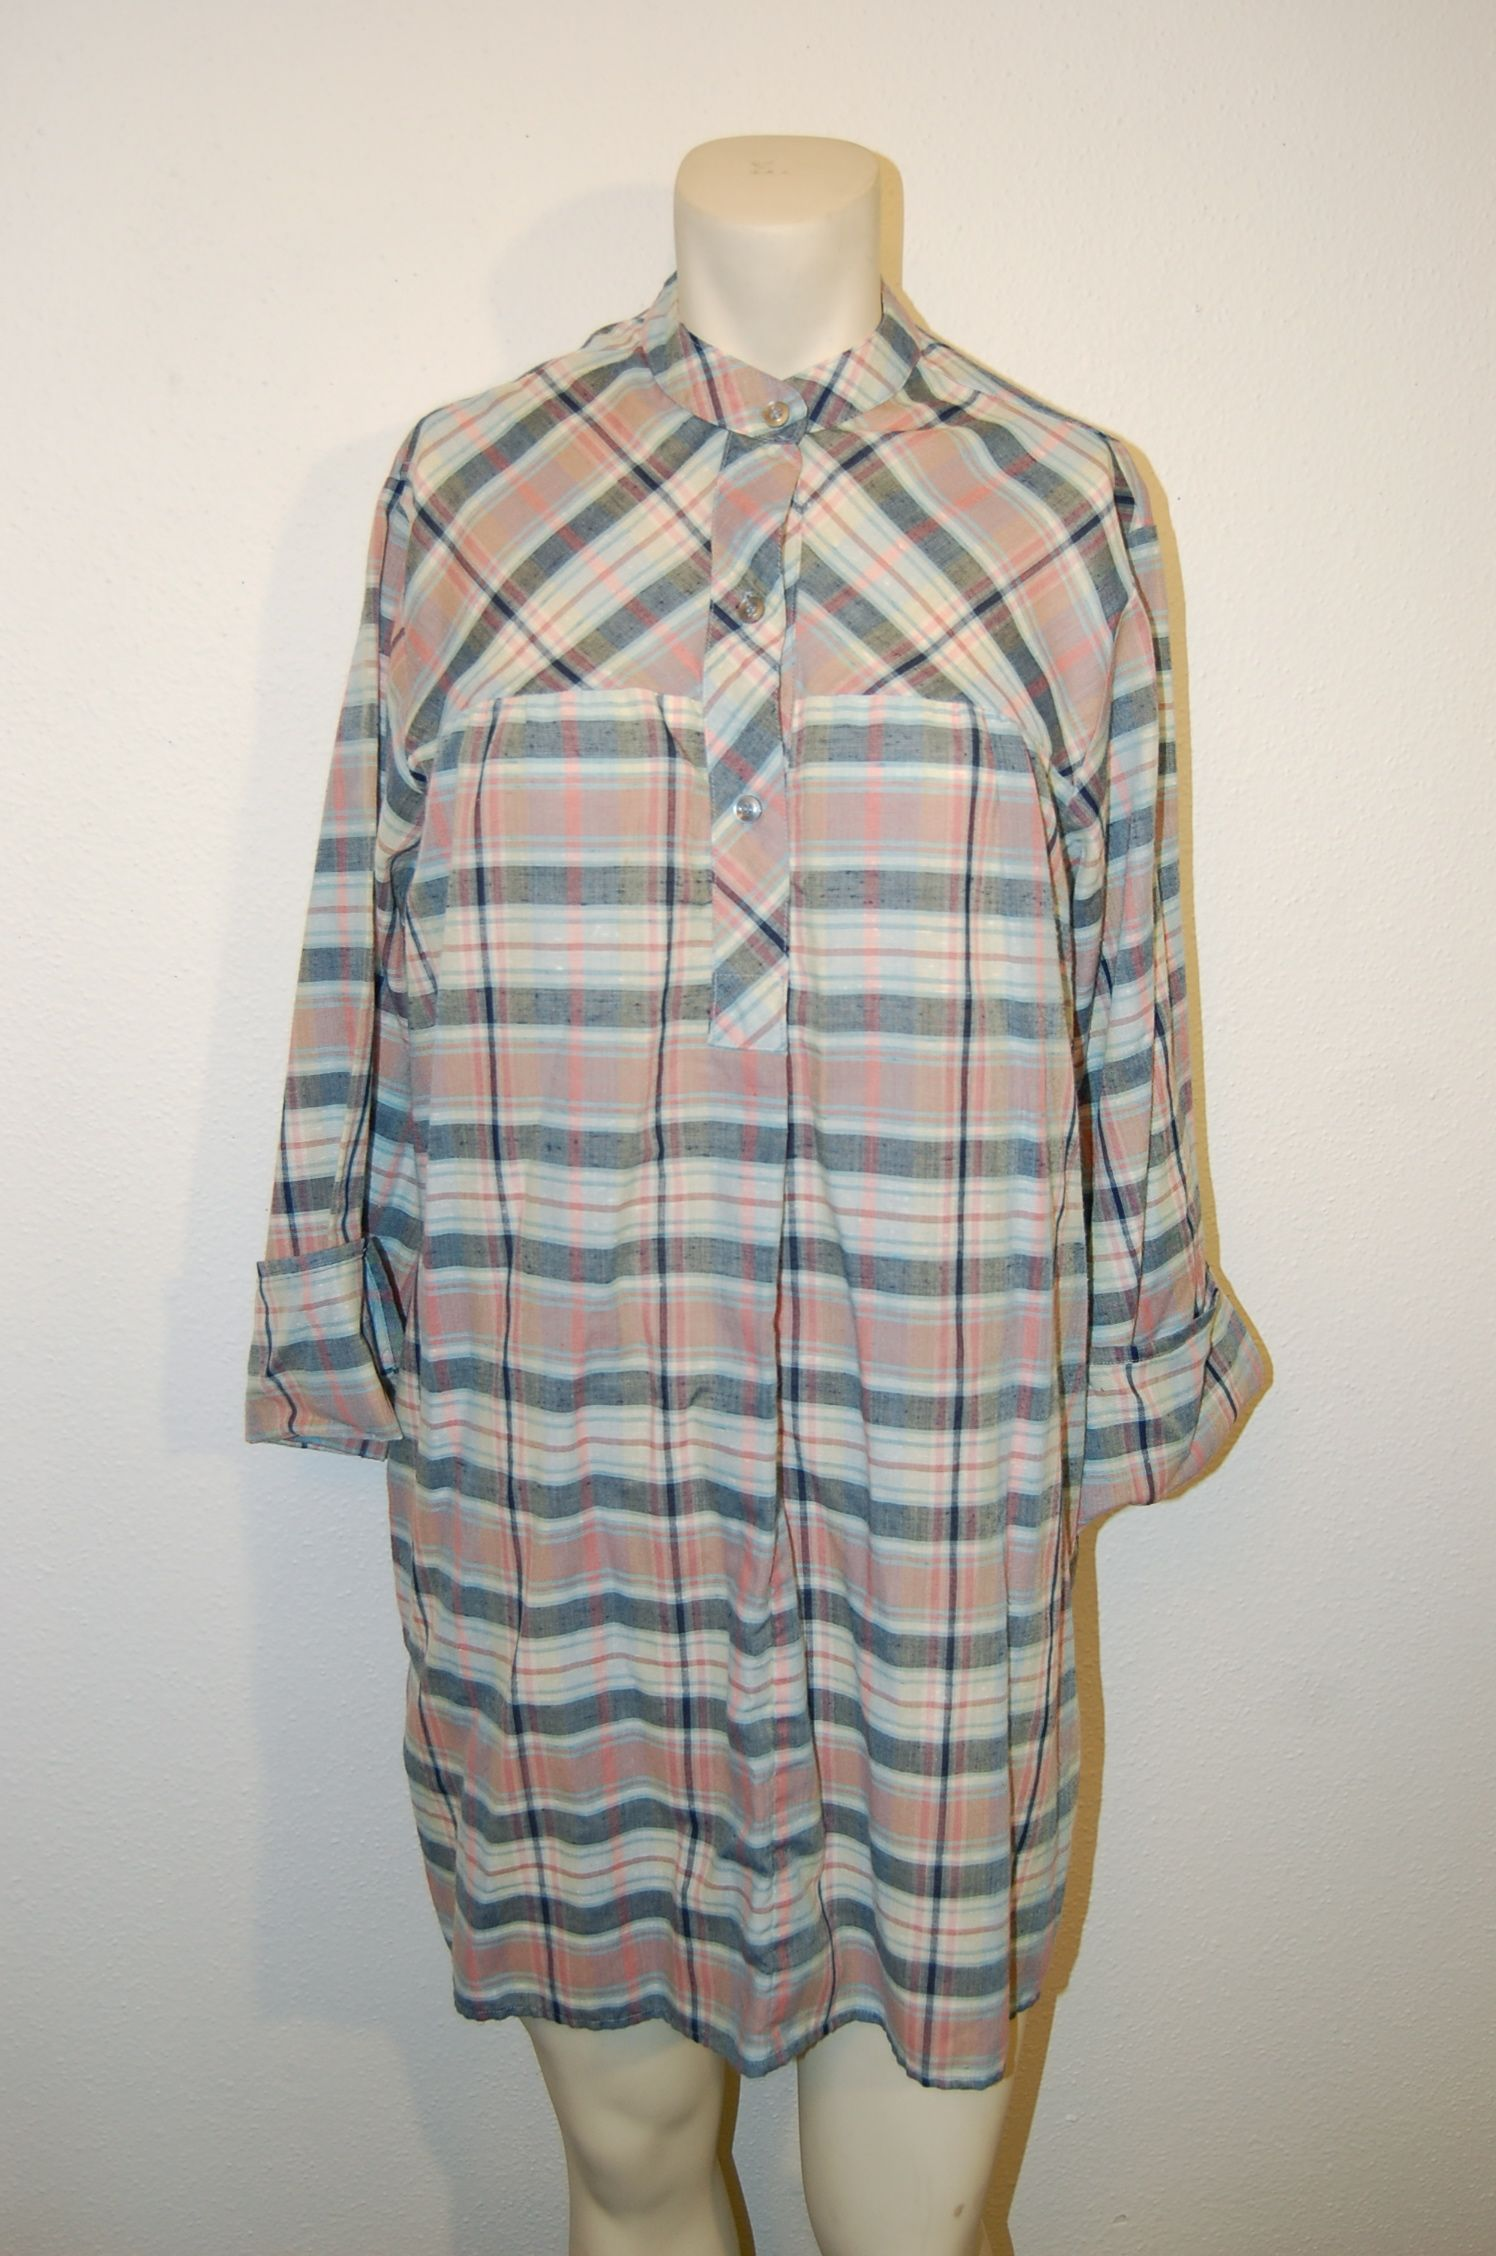 Vintage LEVI'S Plaid Tunic Shirt Dress, for sale on eBay right now! bid here: http://www.ebay.com/itm/Vintage-LEVIS-Plaid-Tunic-Shirt-Dress-3-4-Sleeves-sz-L-1960s-Bohemian-Grunge-/181300683146?pt=Vintage_Women_s_Clothing&hash=item2a365ce18a